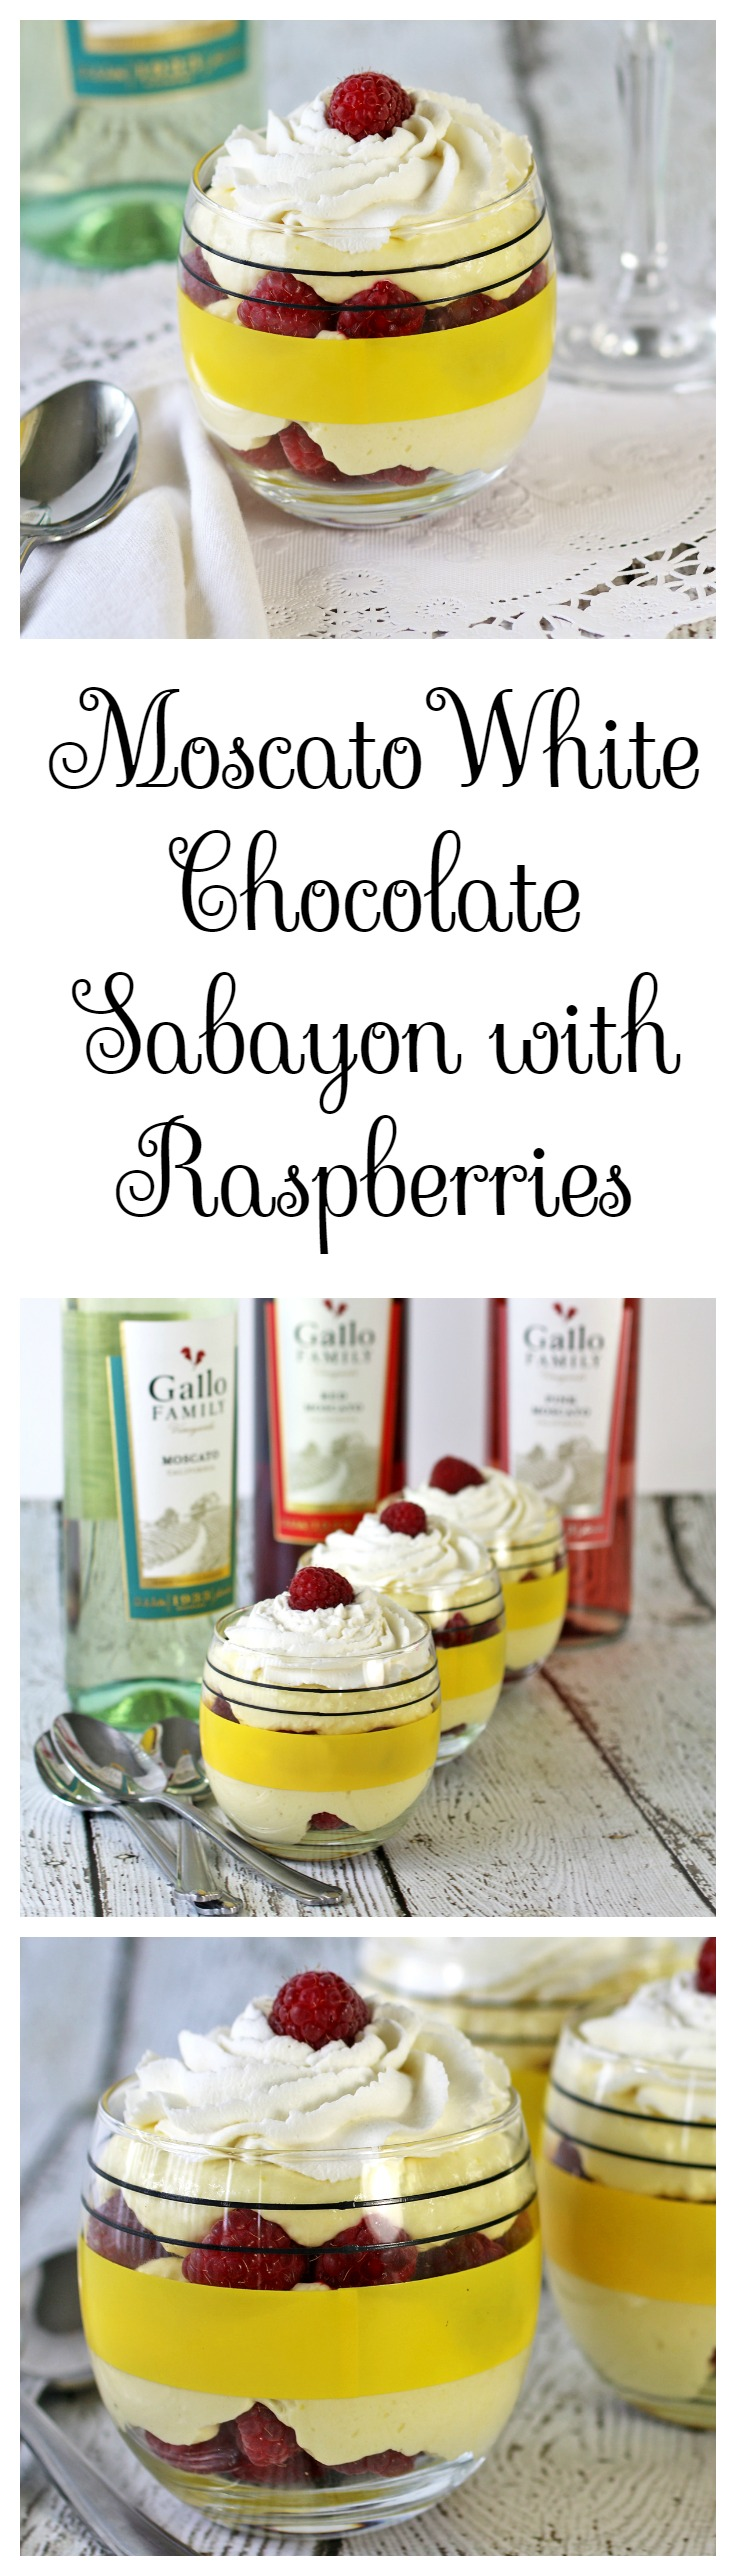 Moscato White Chocolate Sabayon with Raspberries